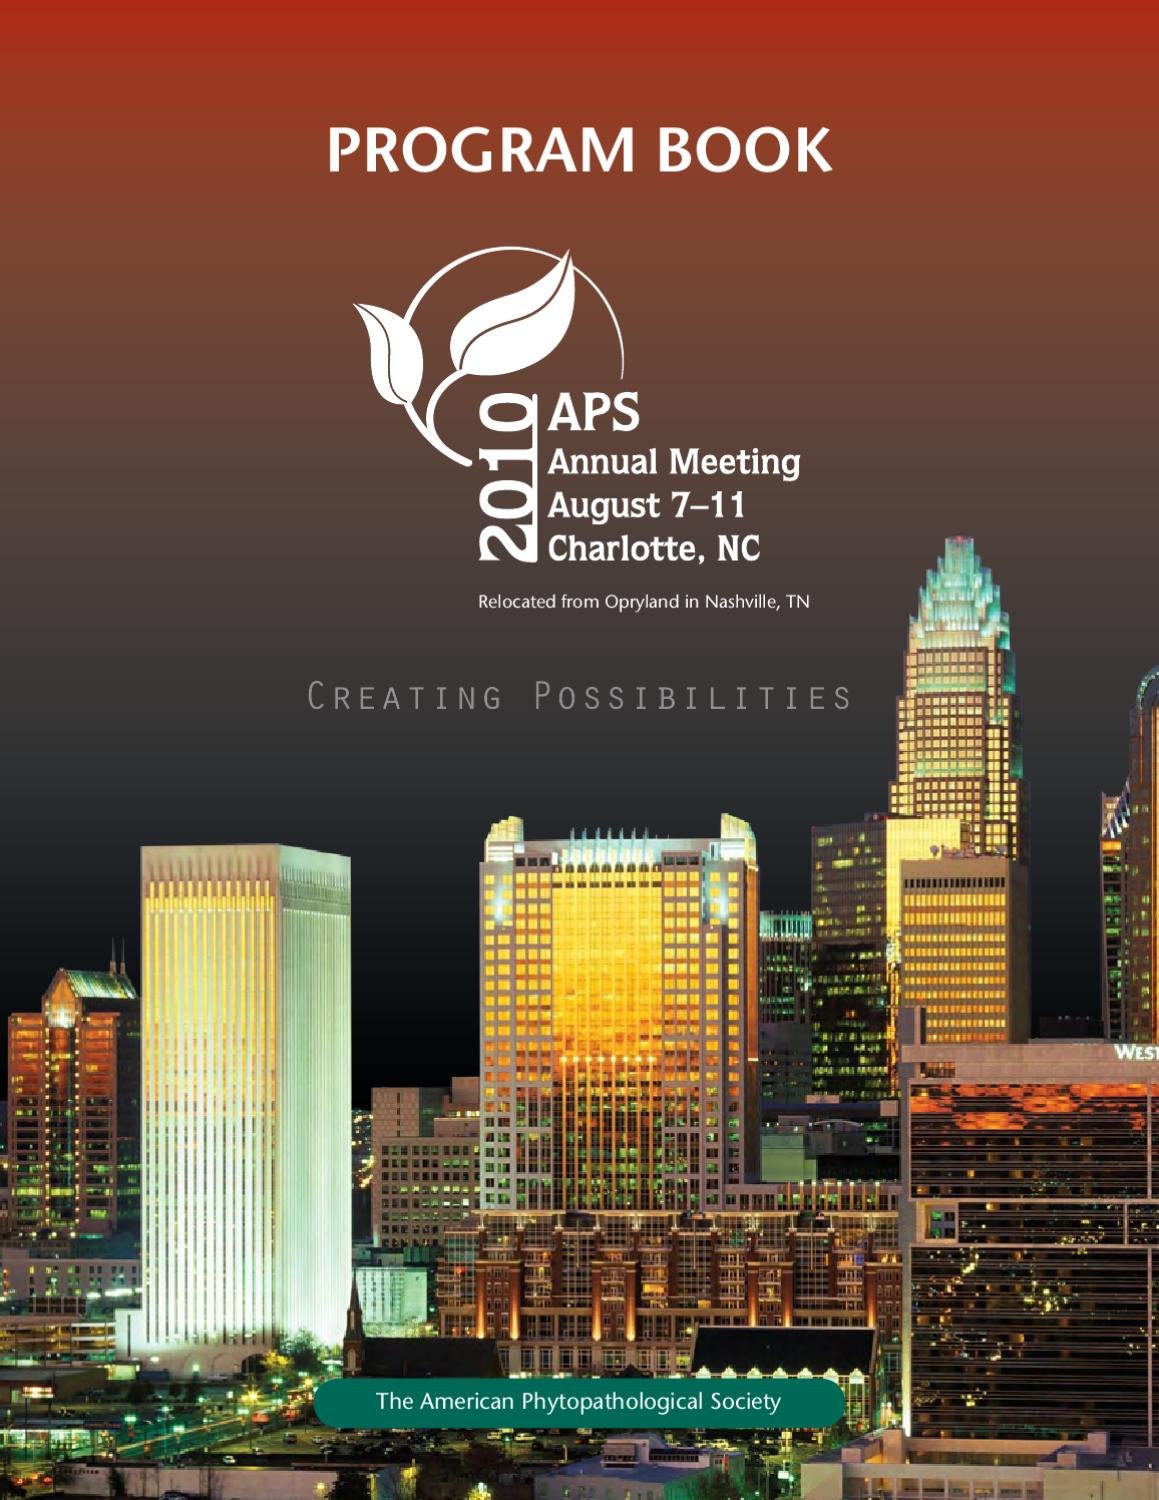 2014 ASCO Annual Meeting: Scientific Program Preview and Meeting Resources